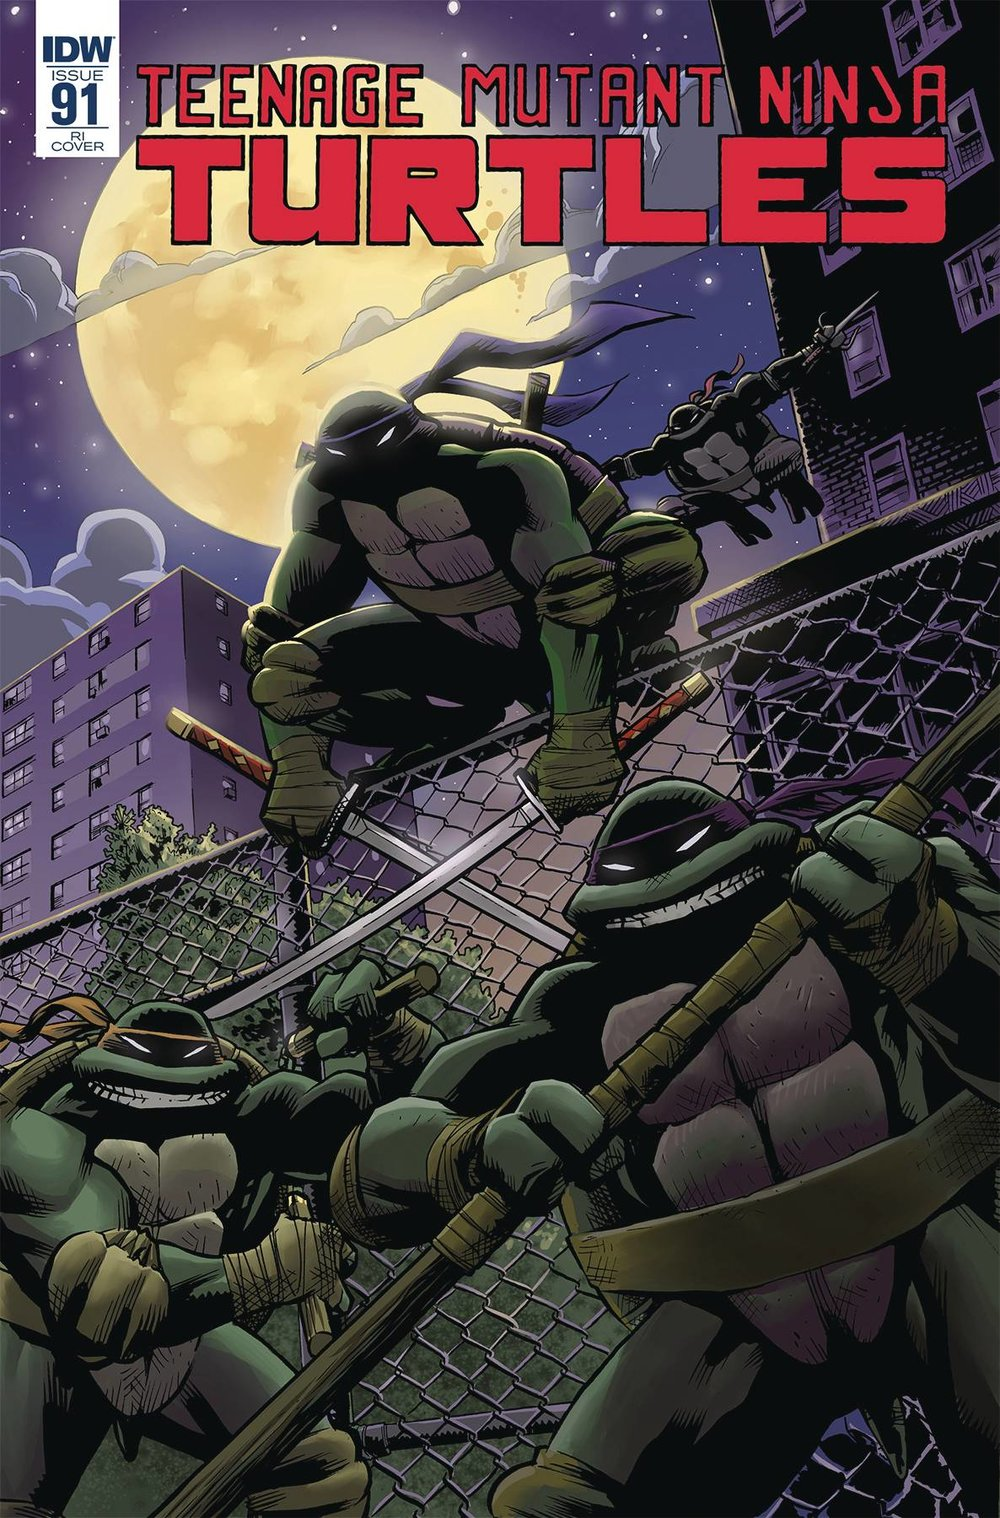 TMNT ONGOING 91 10 COPY INCV MOLINE.jpg